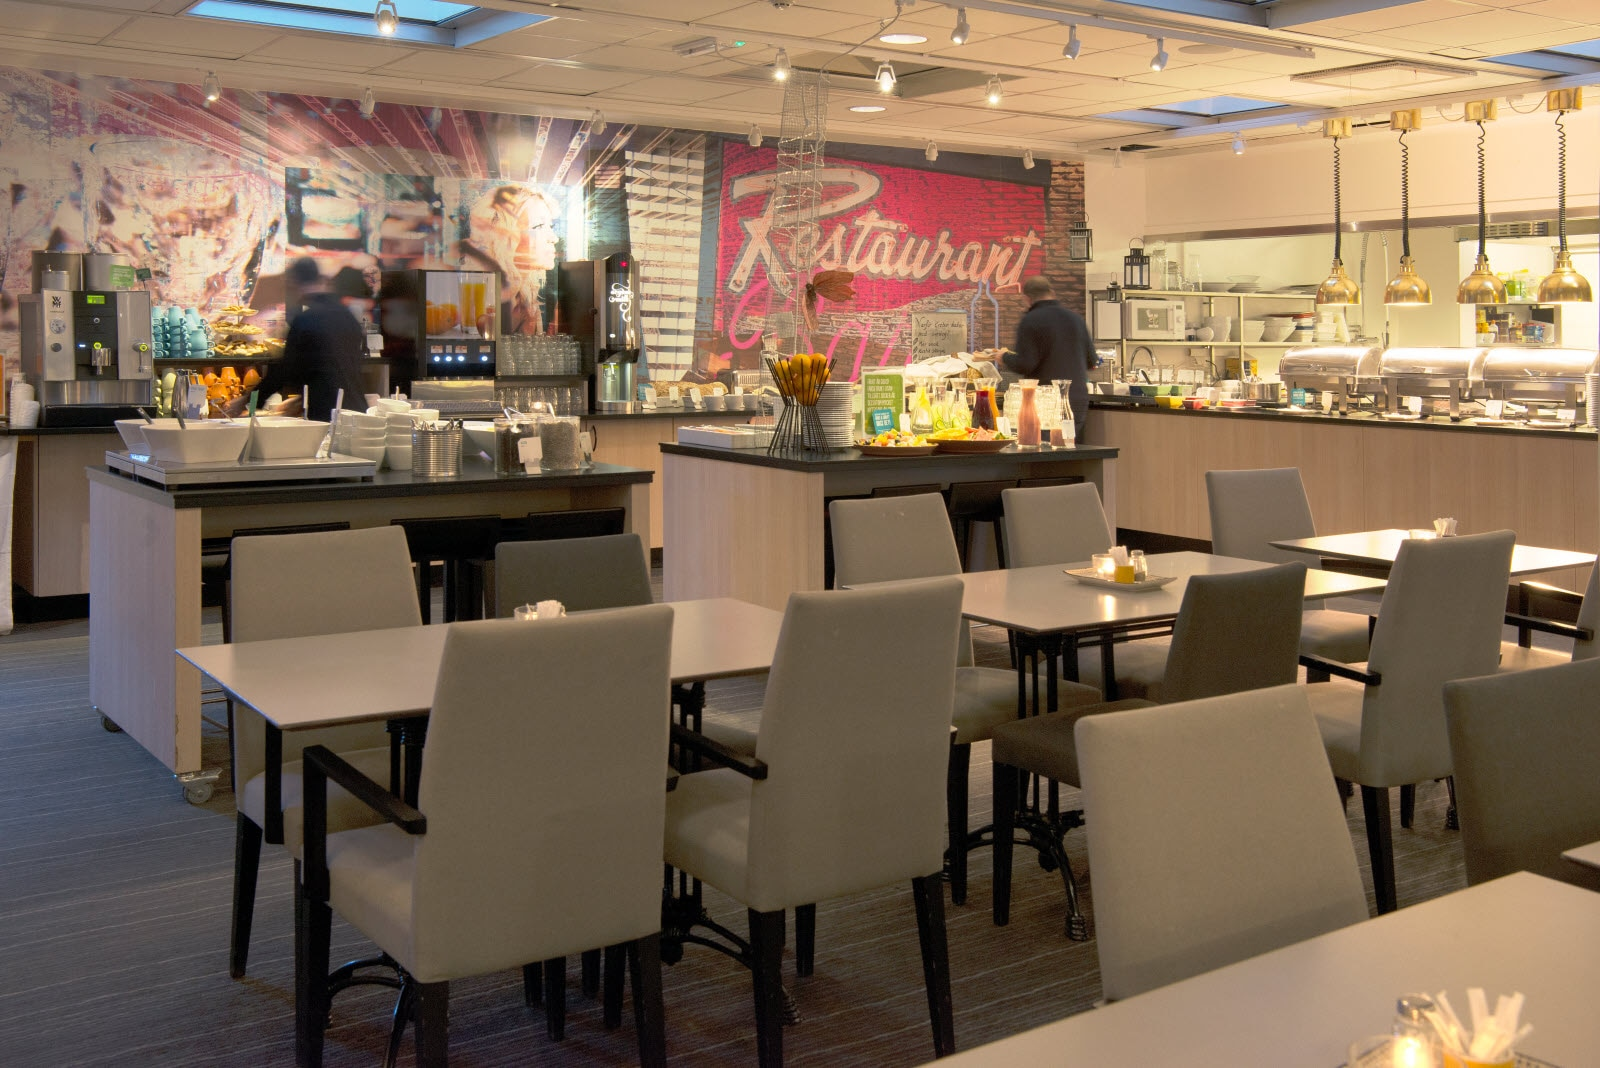 Scandic-Sundsvall-City-Restaurant-Breakfast.jpg